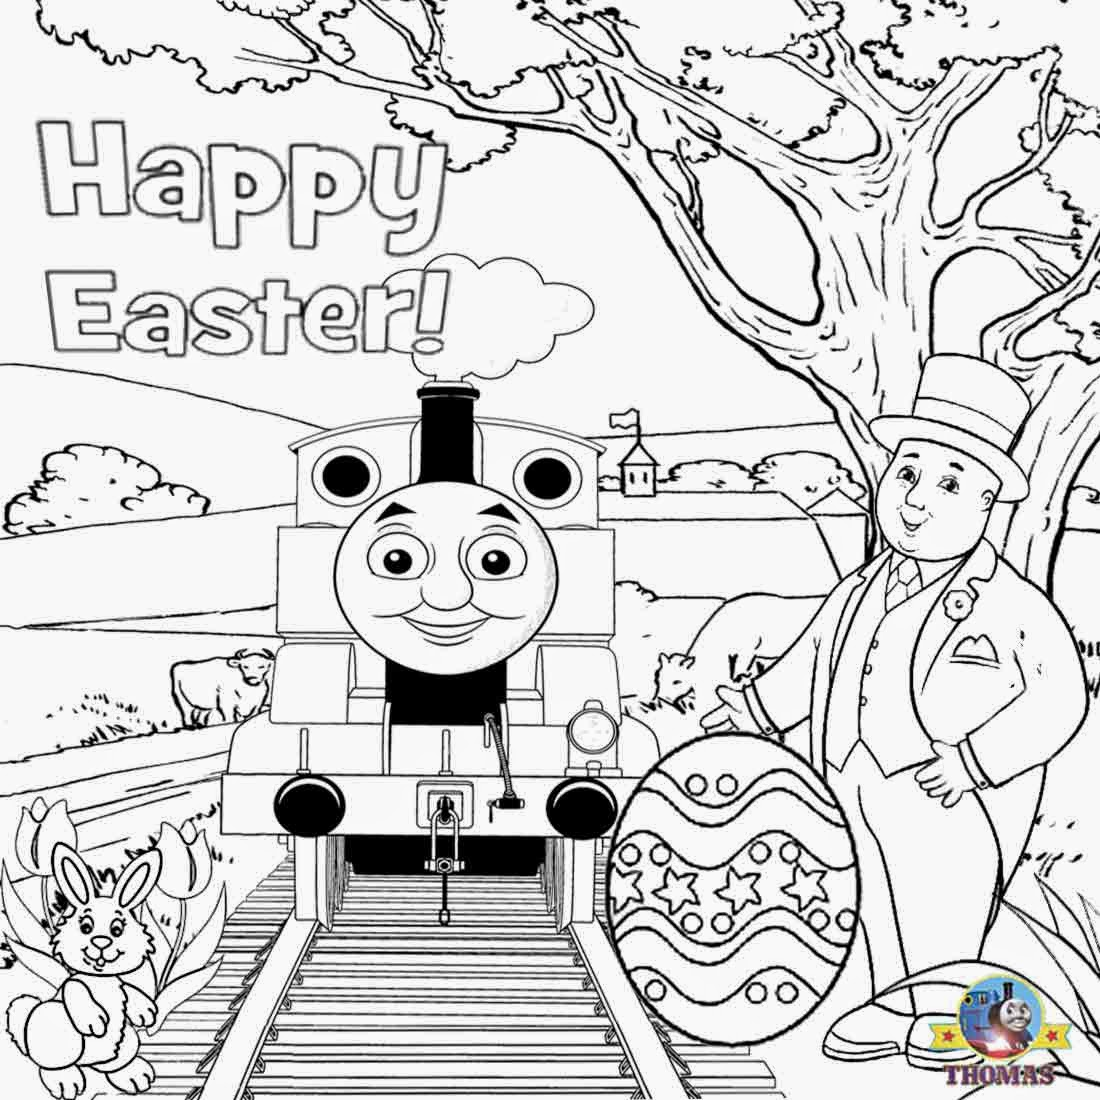 Kids Happy Easter coloring pictures of Thomas the train and friends